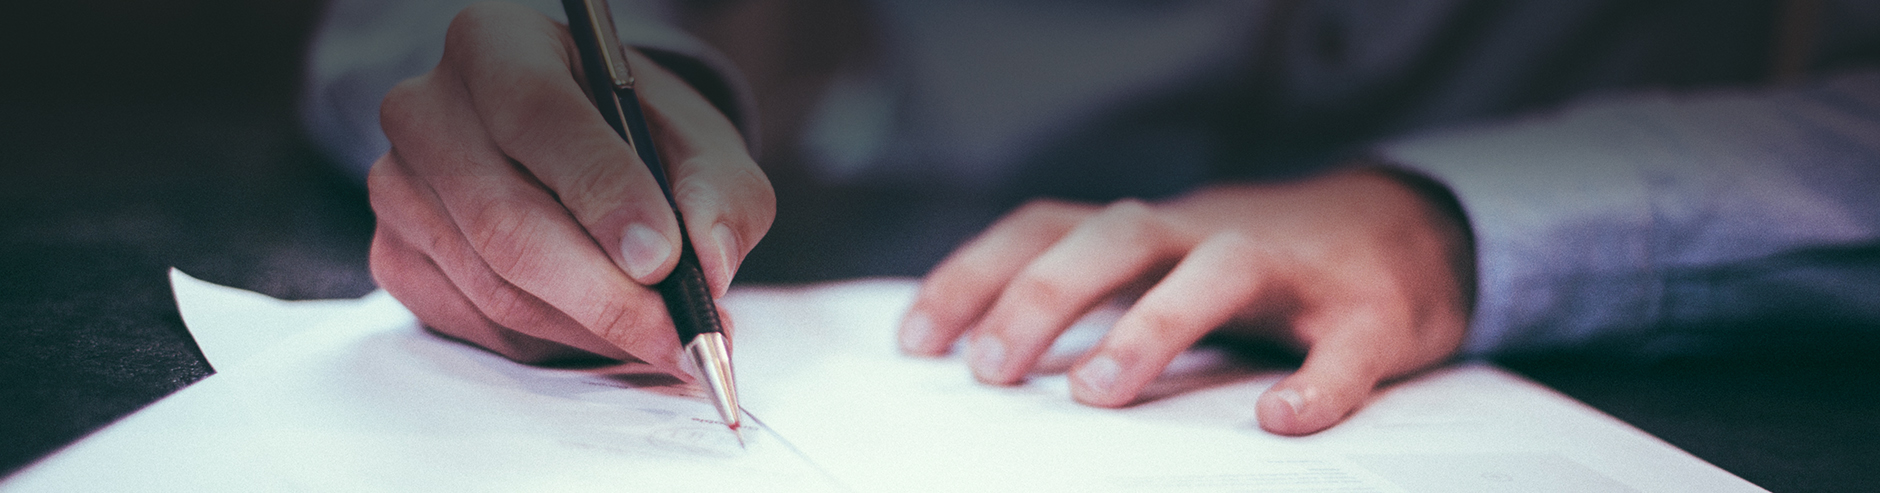 Enago Offers English Editing and Proofreading Services Across the Globe Com custom essay writing